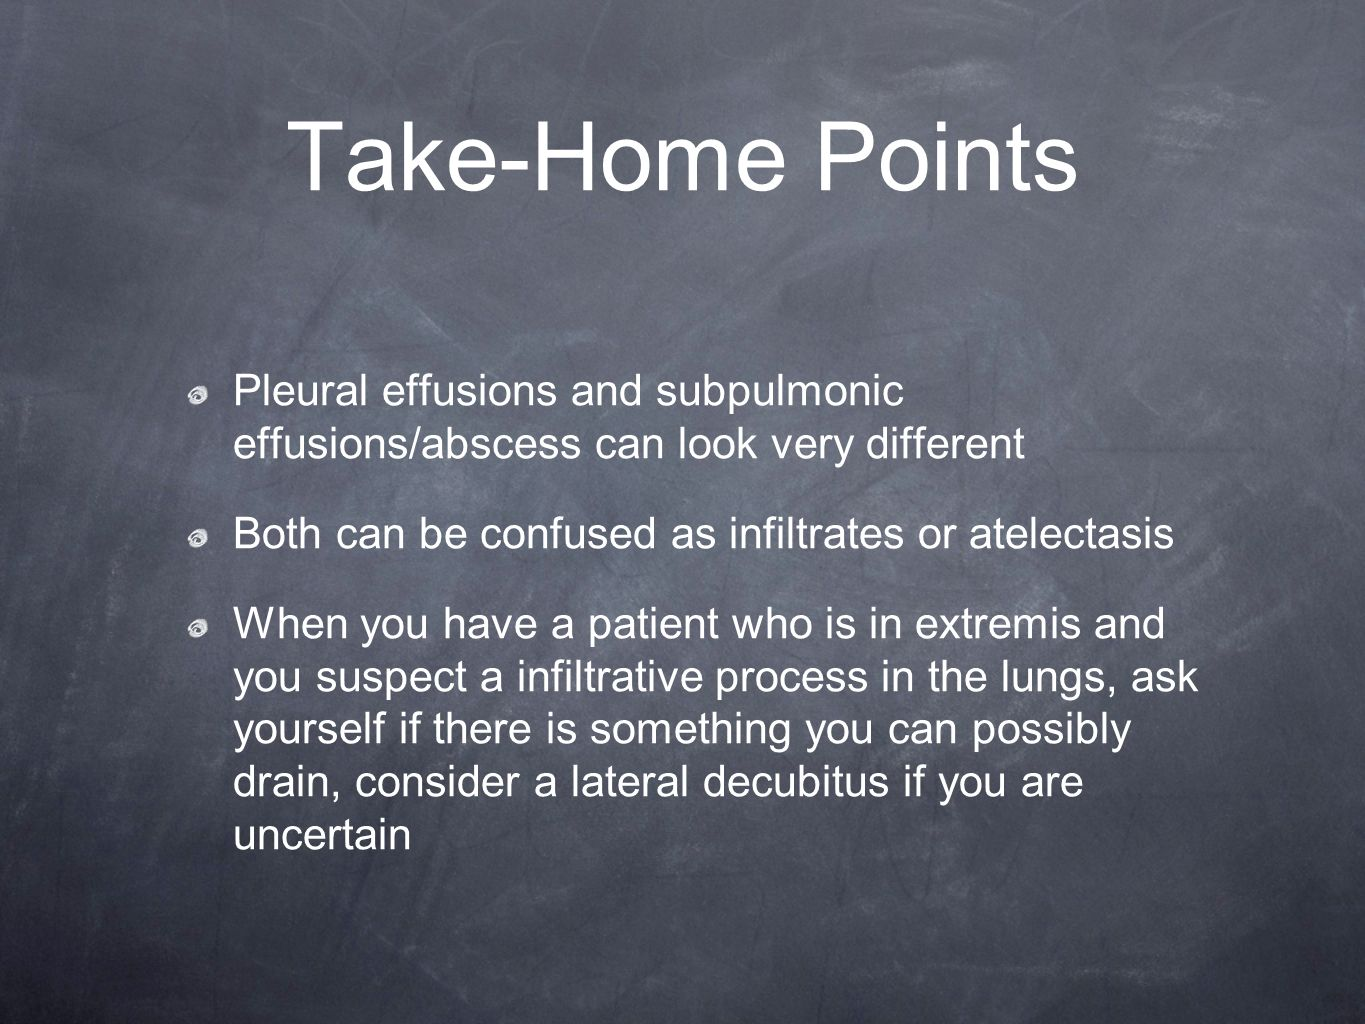 Take-Home Points Pleural effusions and subpulmonic effusions/abscess can look very different. Both can be confused as infiltrates or atelectasis.